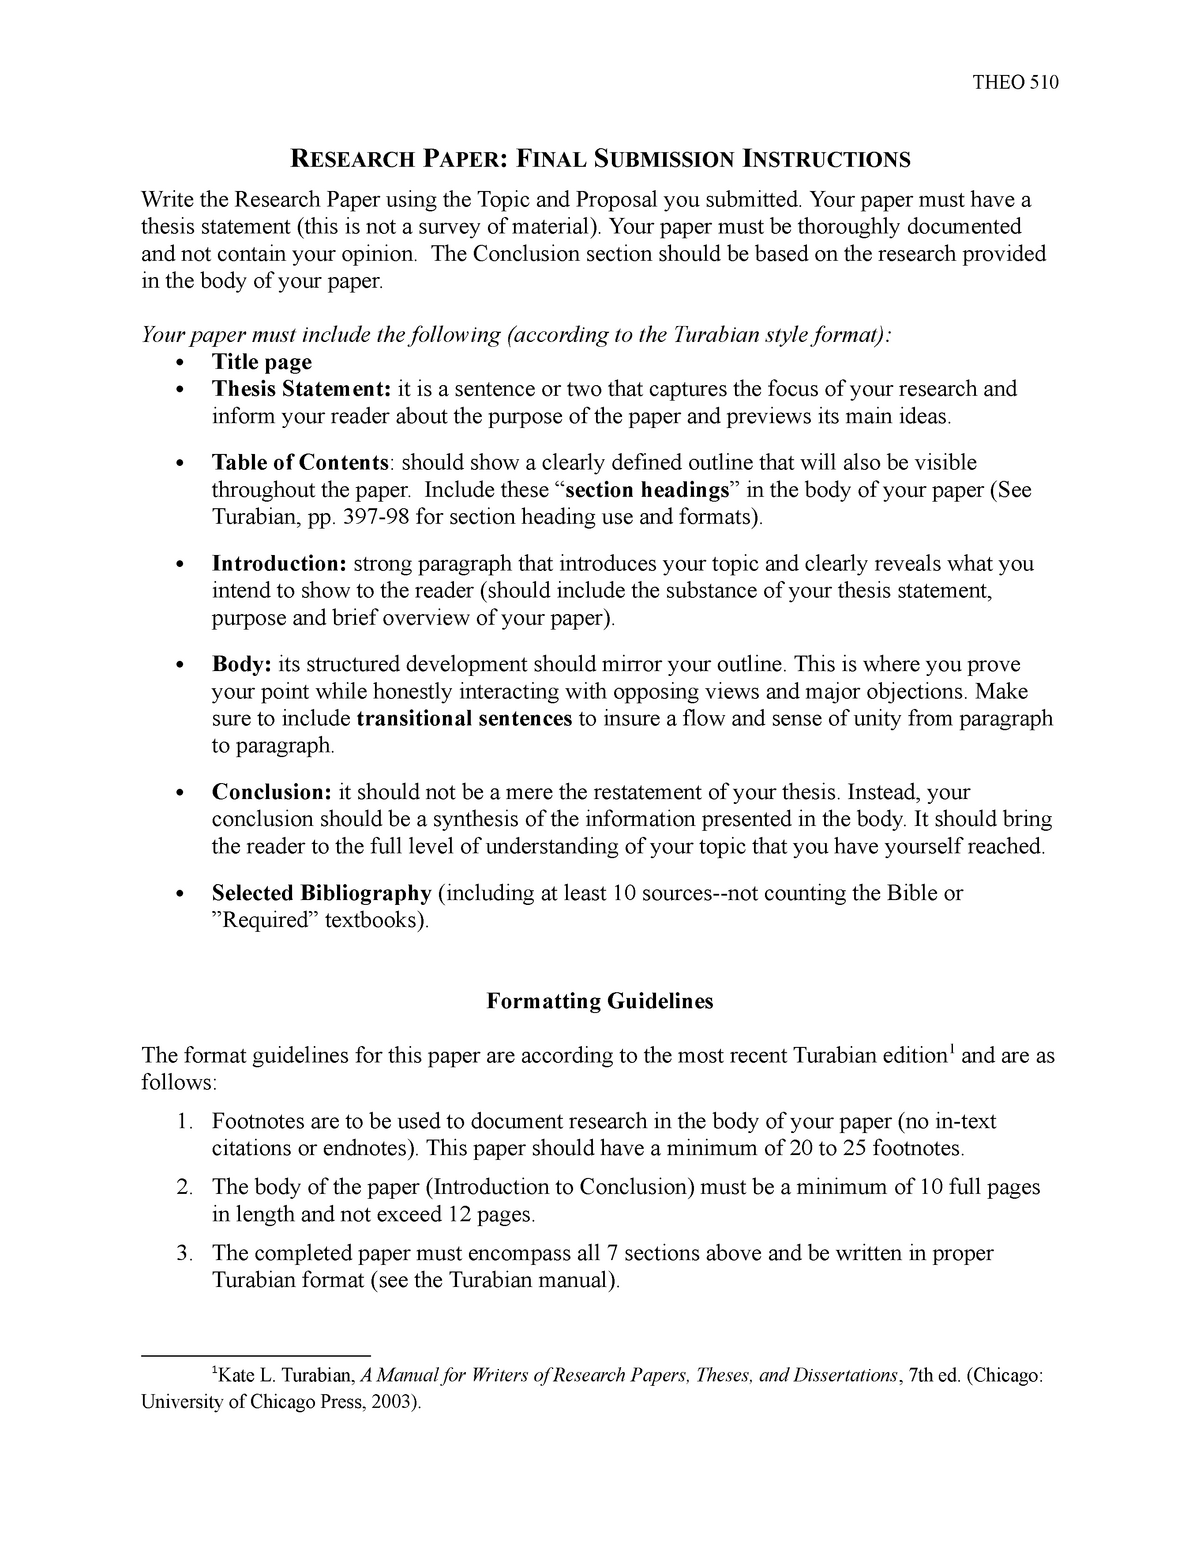 What Is Thesis In An Essay  English Essays On Different Topics also Thesis For A Narrative Essay Paco Research Paper Final Submission  Paco   Lu  Studocu Essay Proposal Examples